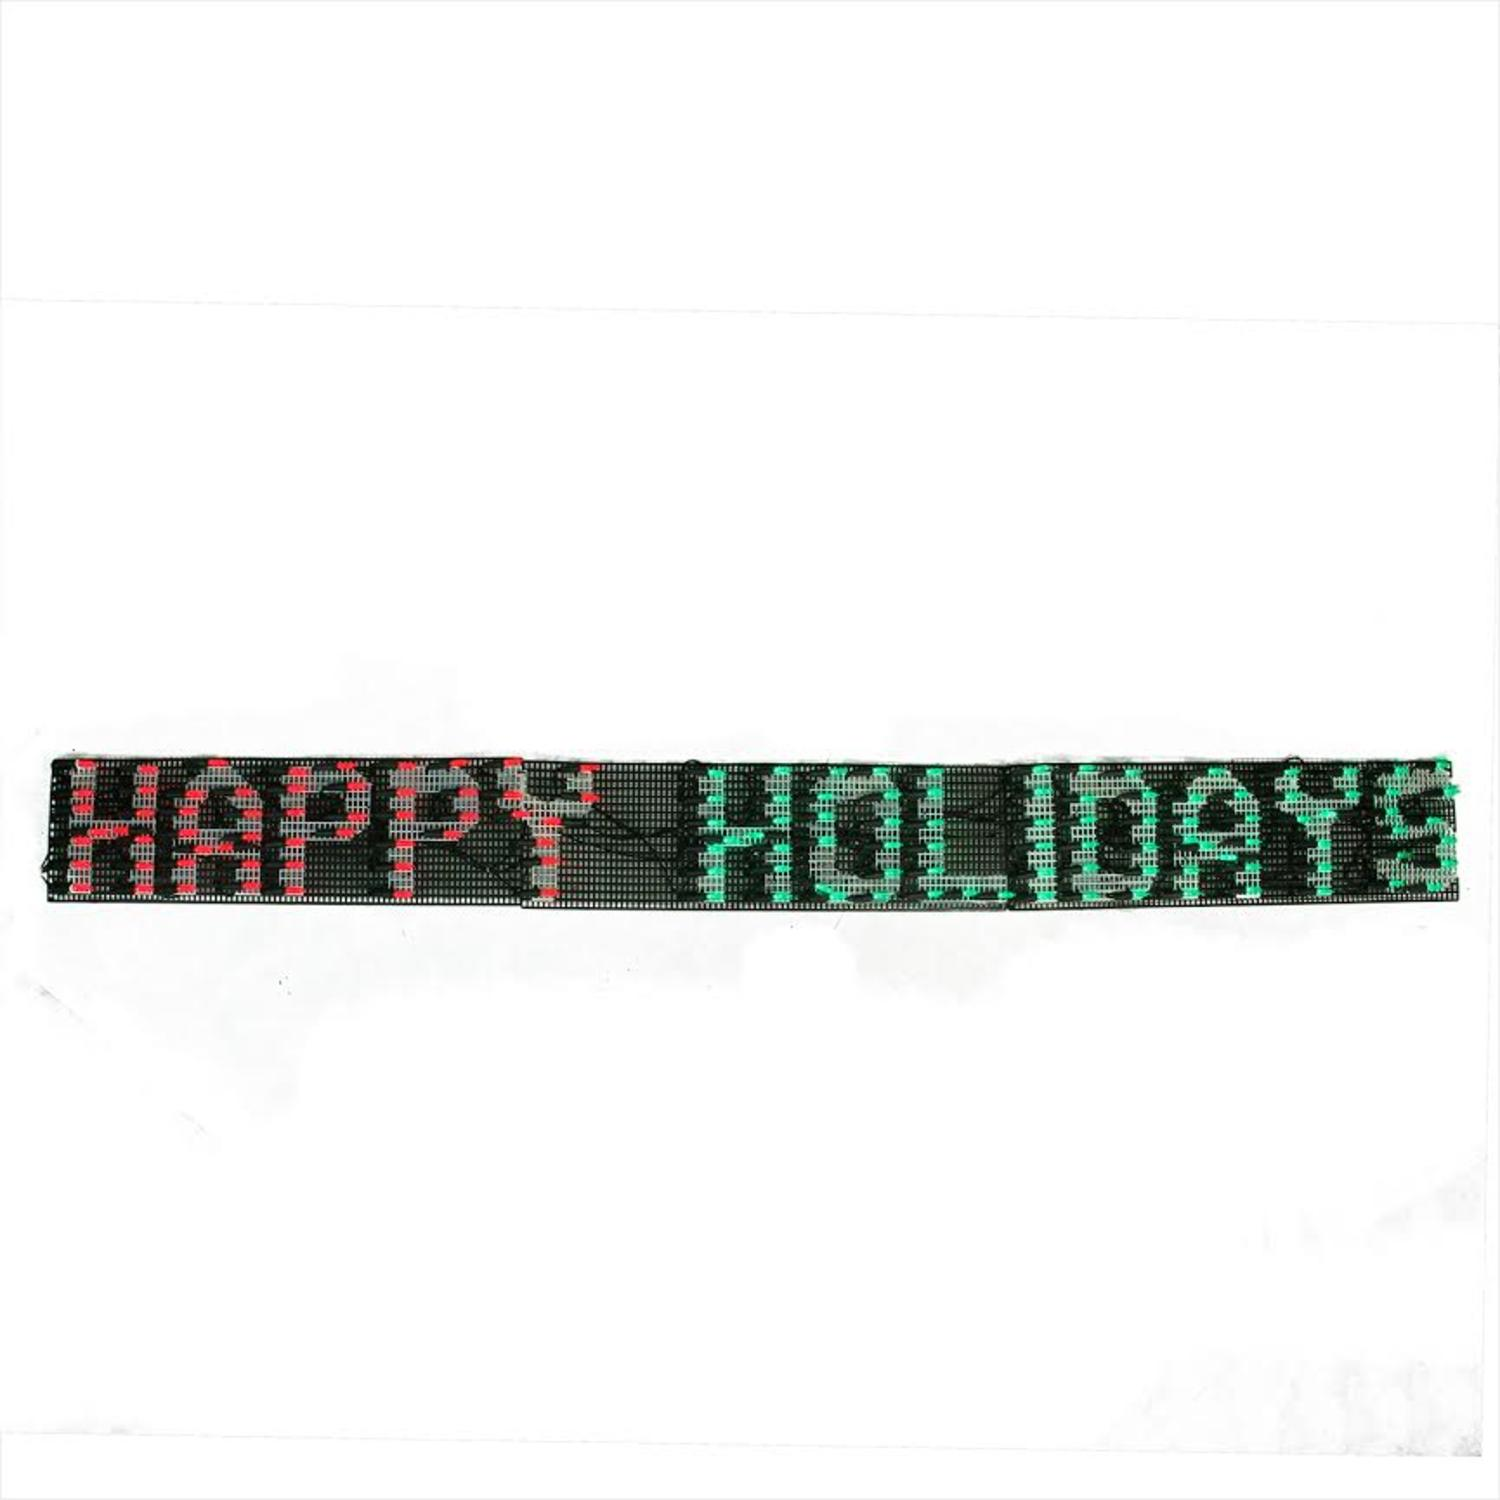 ''60'''' x 6'''' Happy HOLIDAYs LED Lighted Christmas Banner - Red and Green Lights''